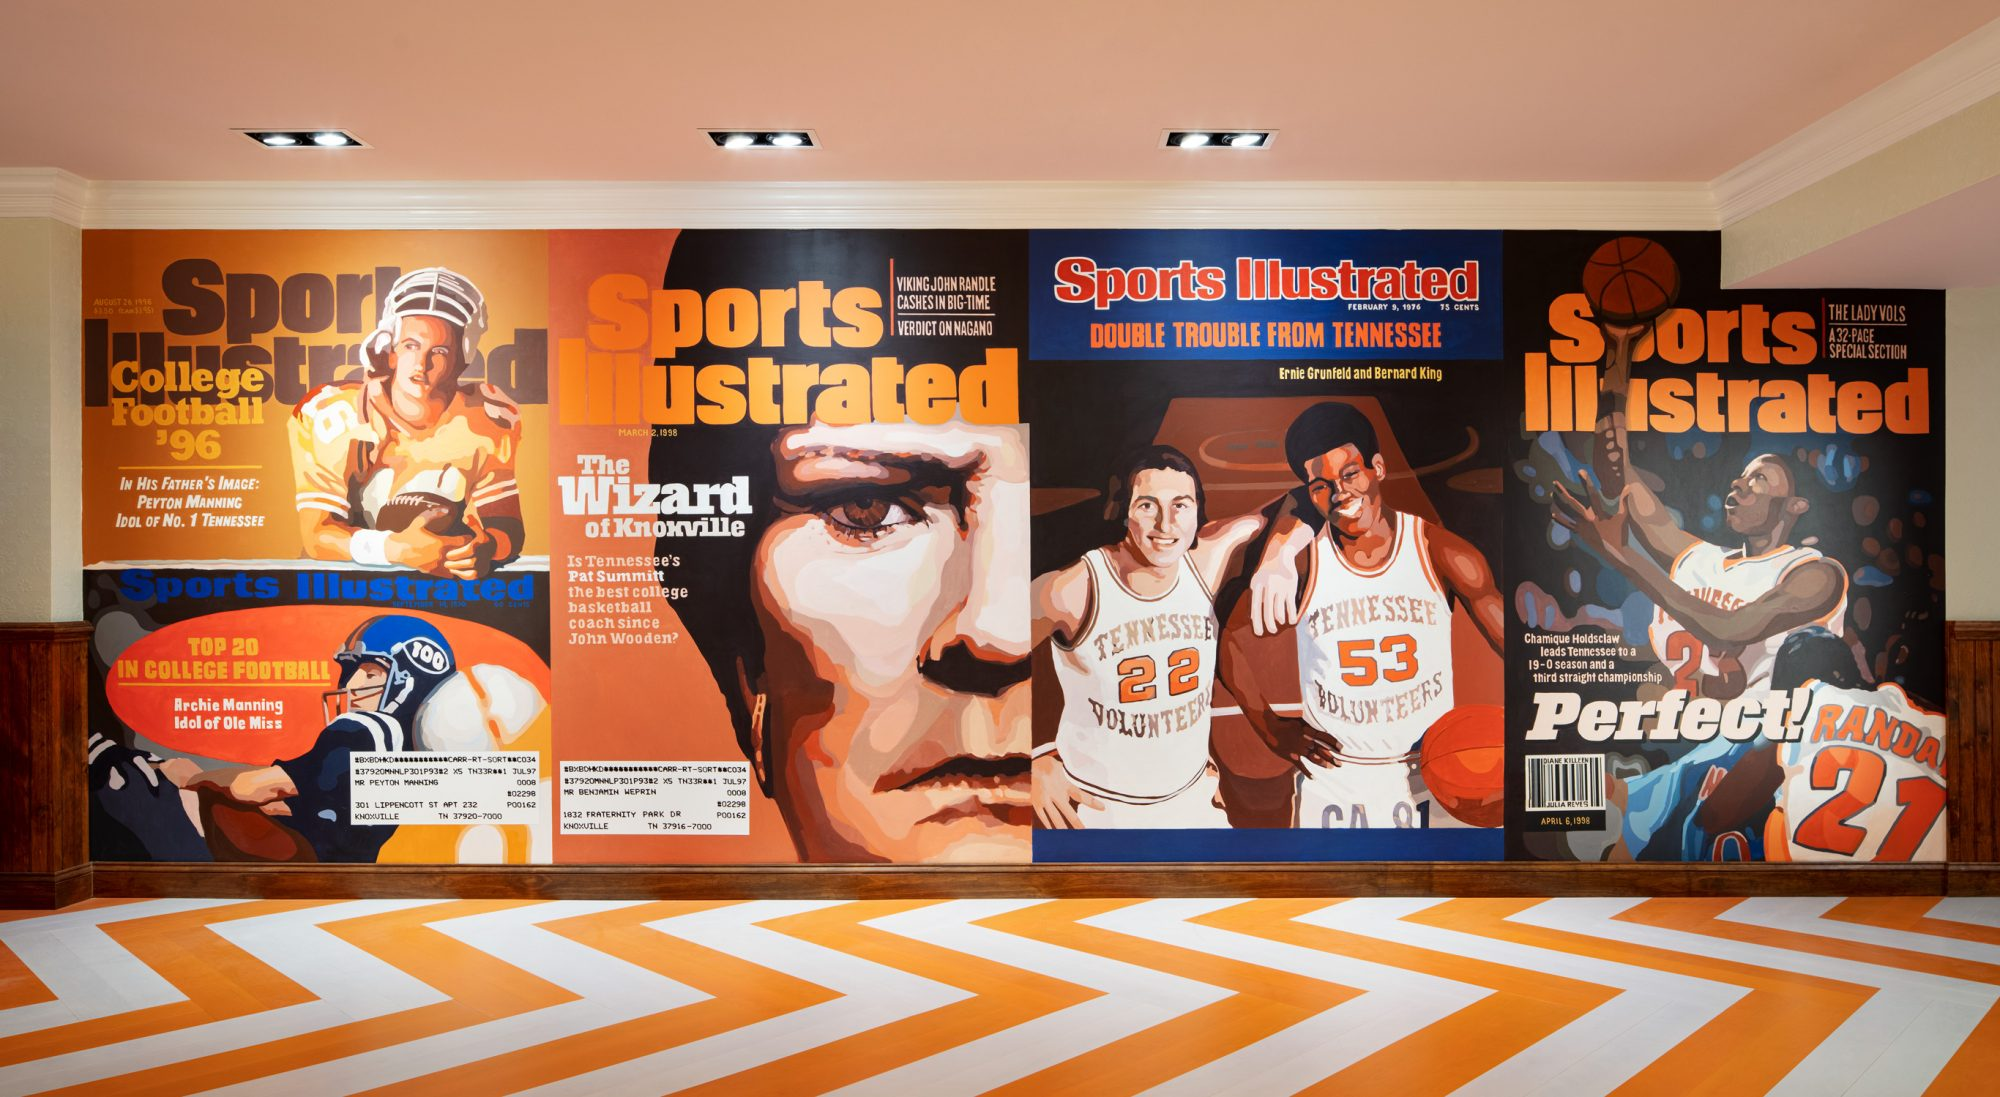 SI Cover wall_Graduate_Knoxville2123